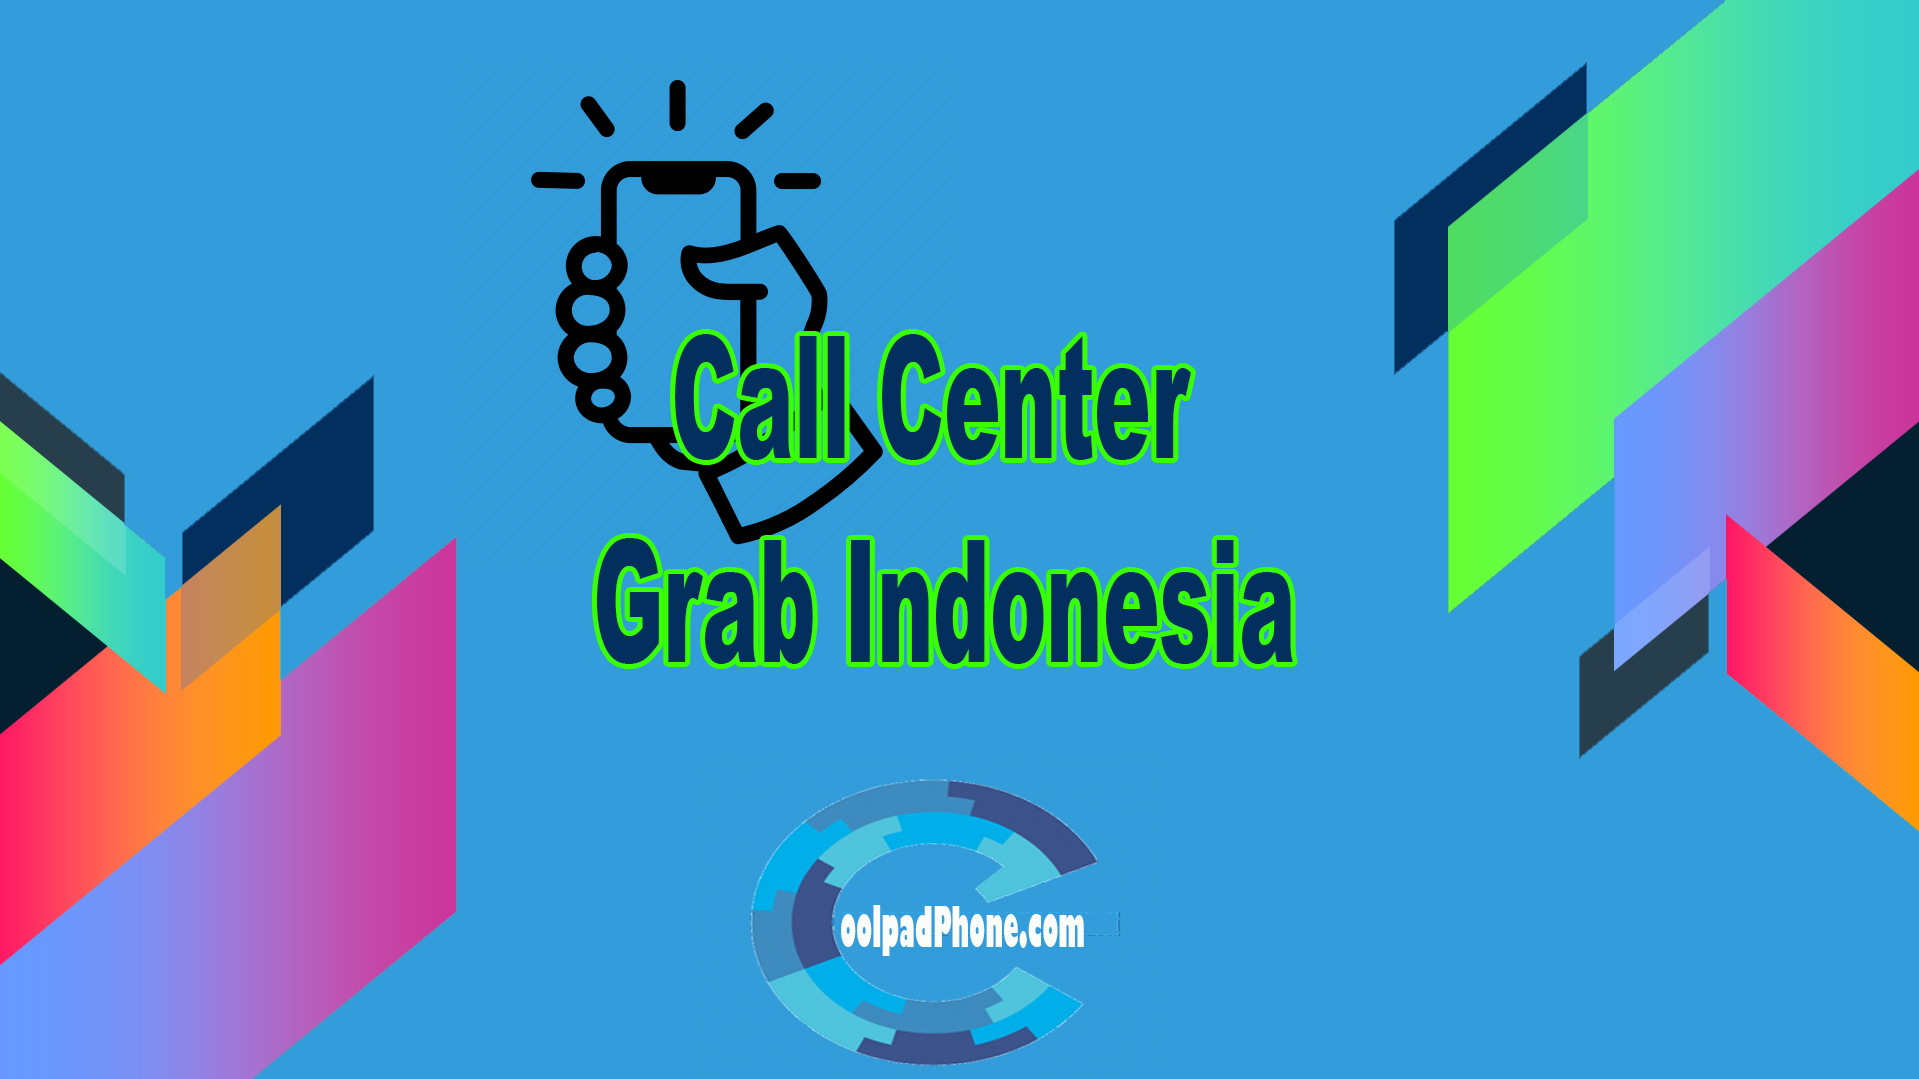 Call Center Grab Indonesia